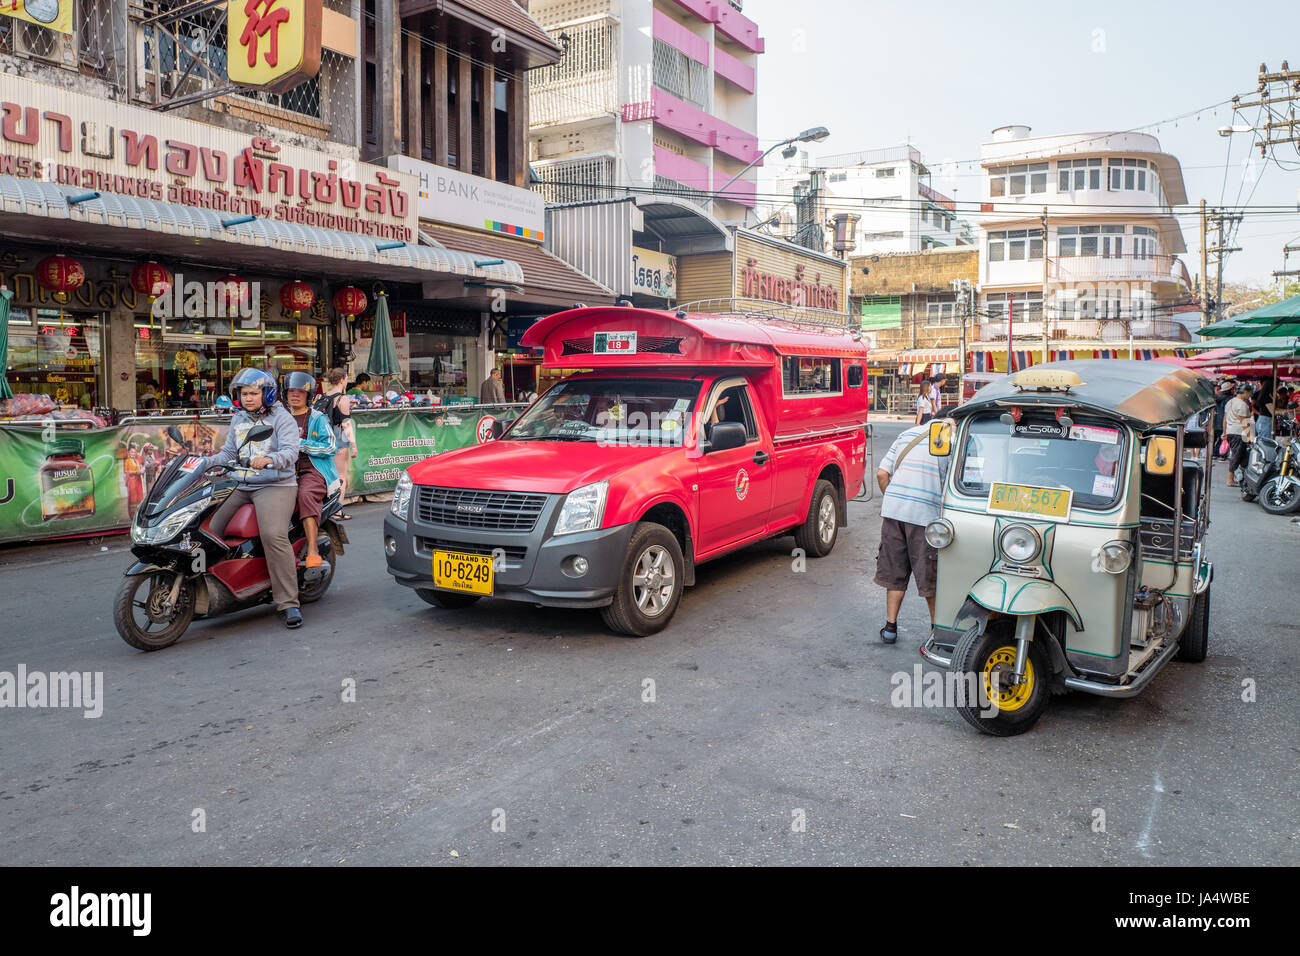 Traditional red songthaew taxi outisde Warorot market in Chiang Mai. This is the largest city in northern Thailand. - Stock Image